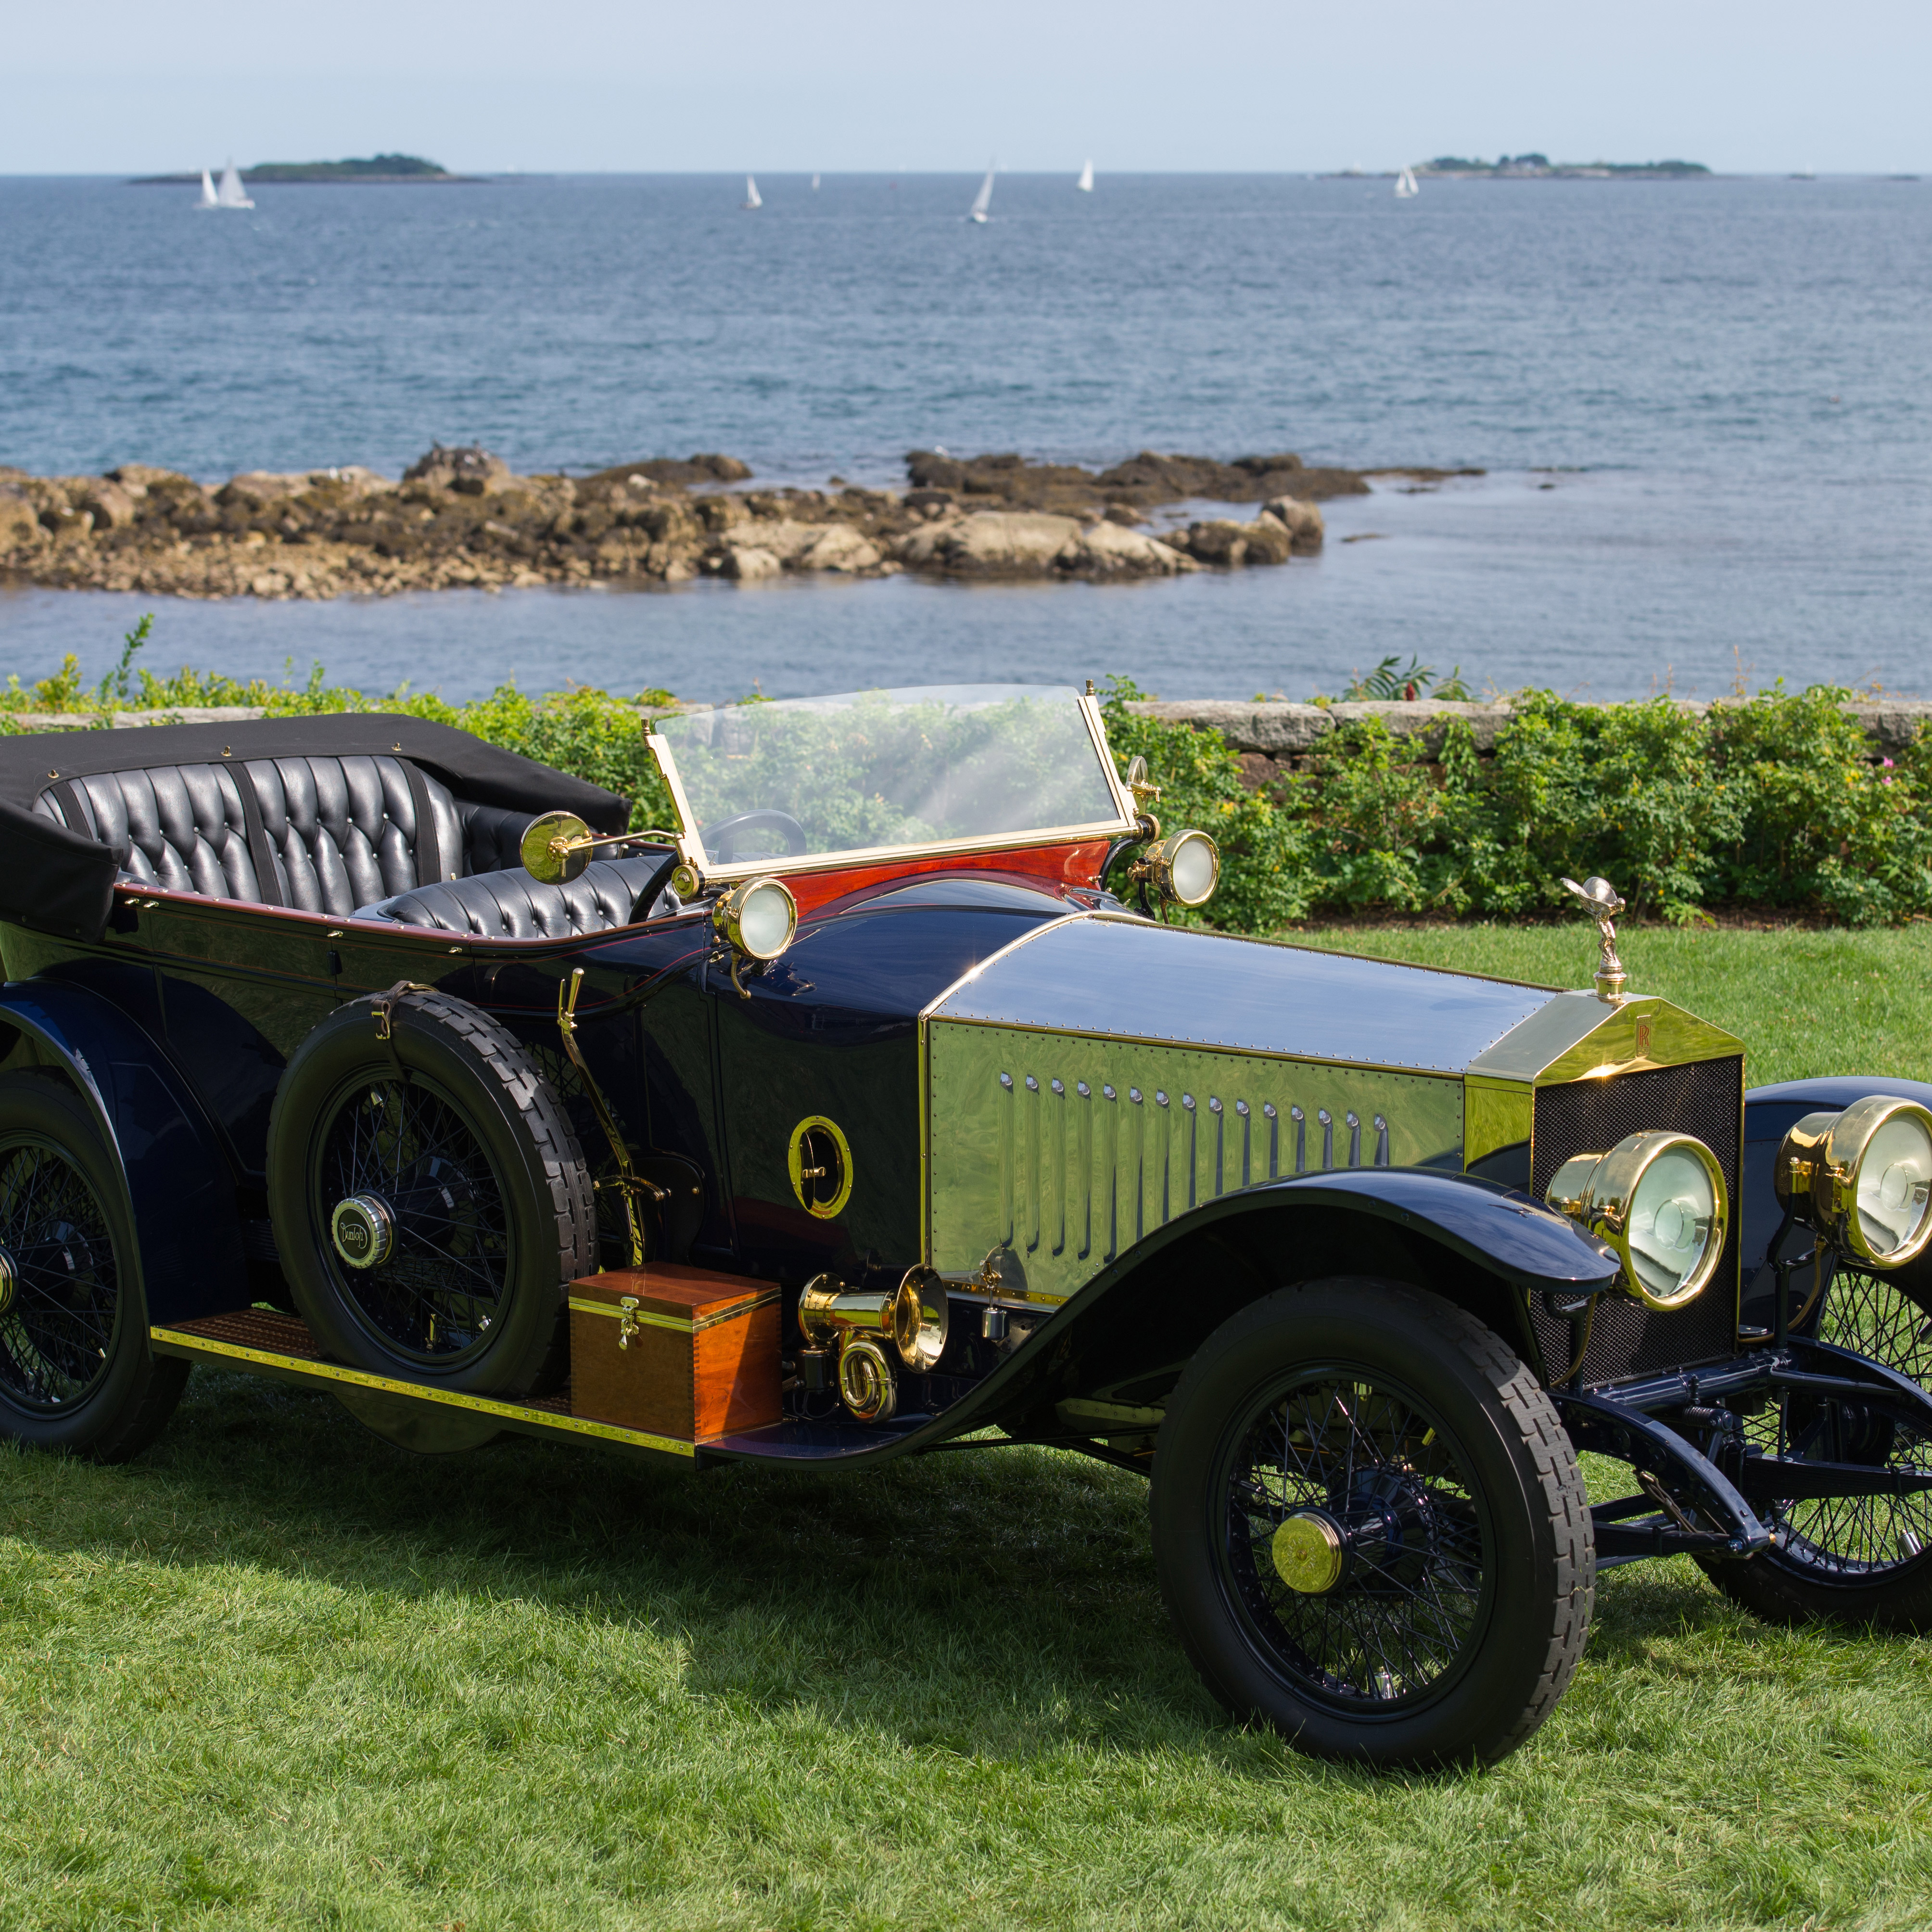 car parked on slight hill with ocean in background at misselwood for concours d'elegance